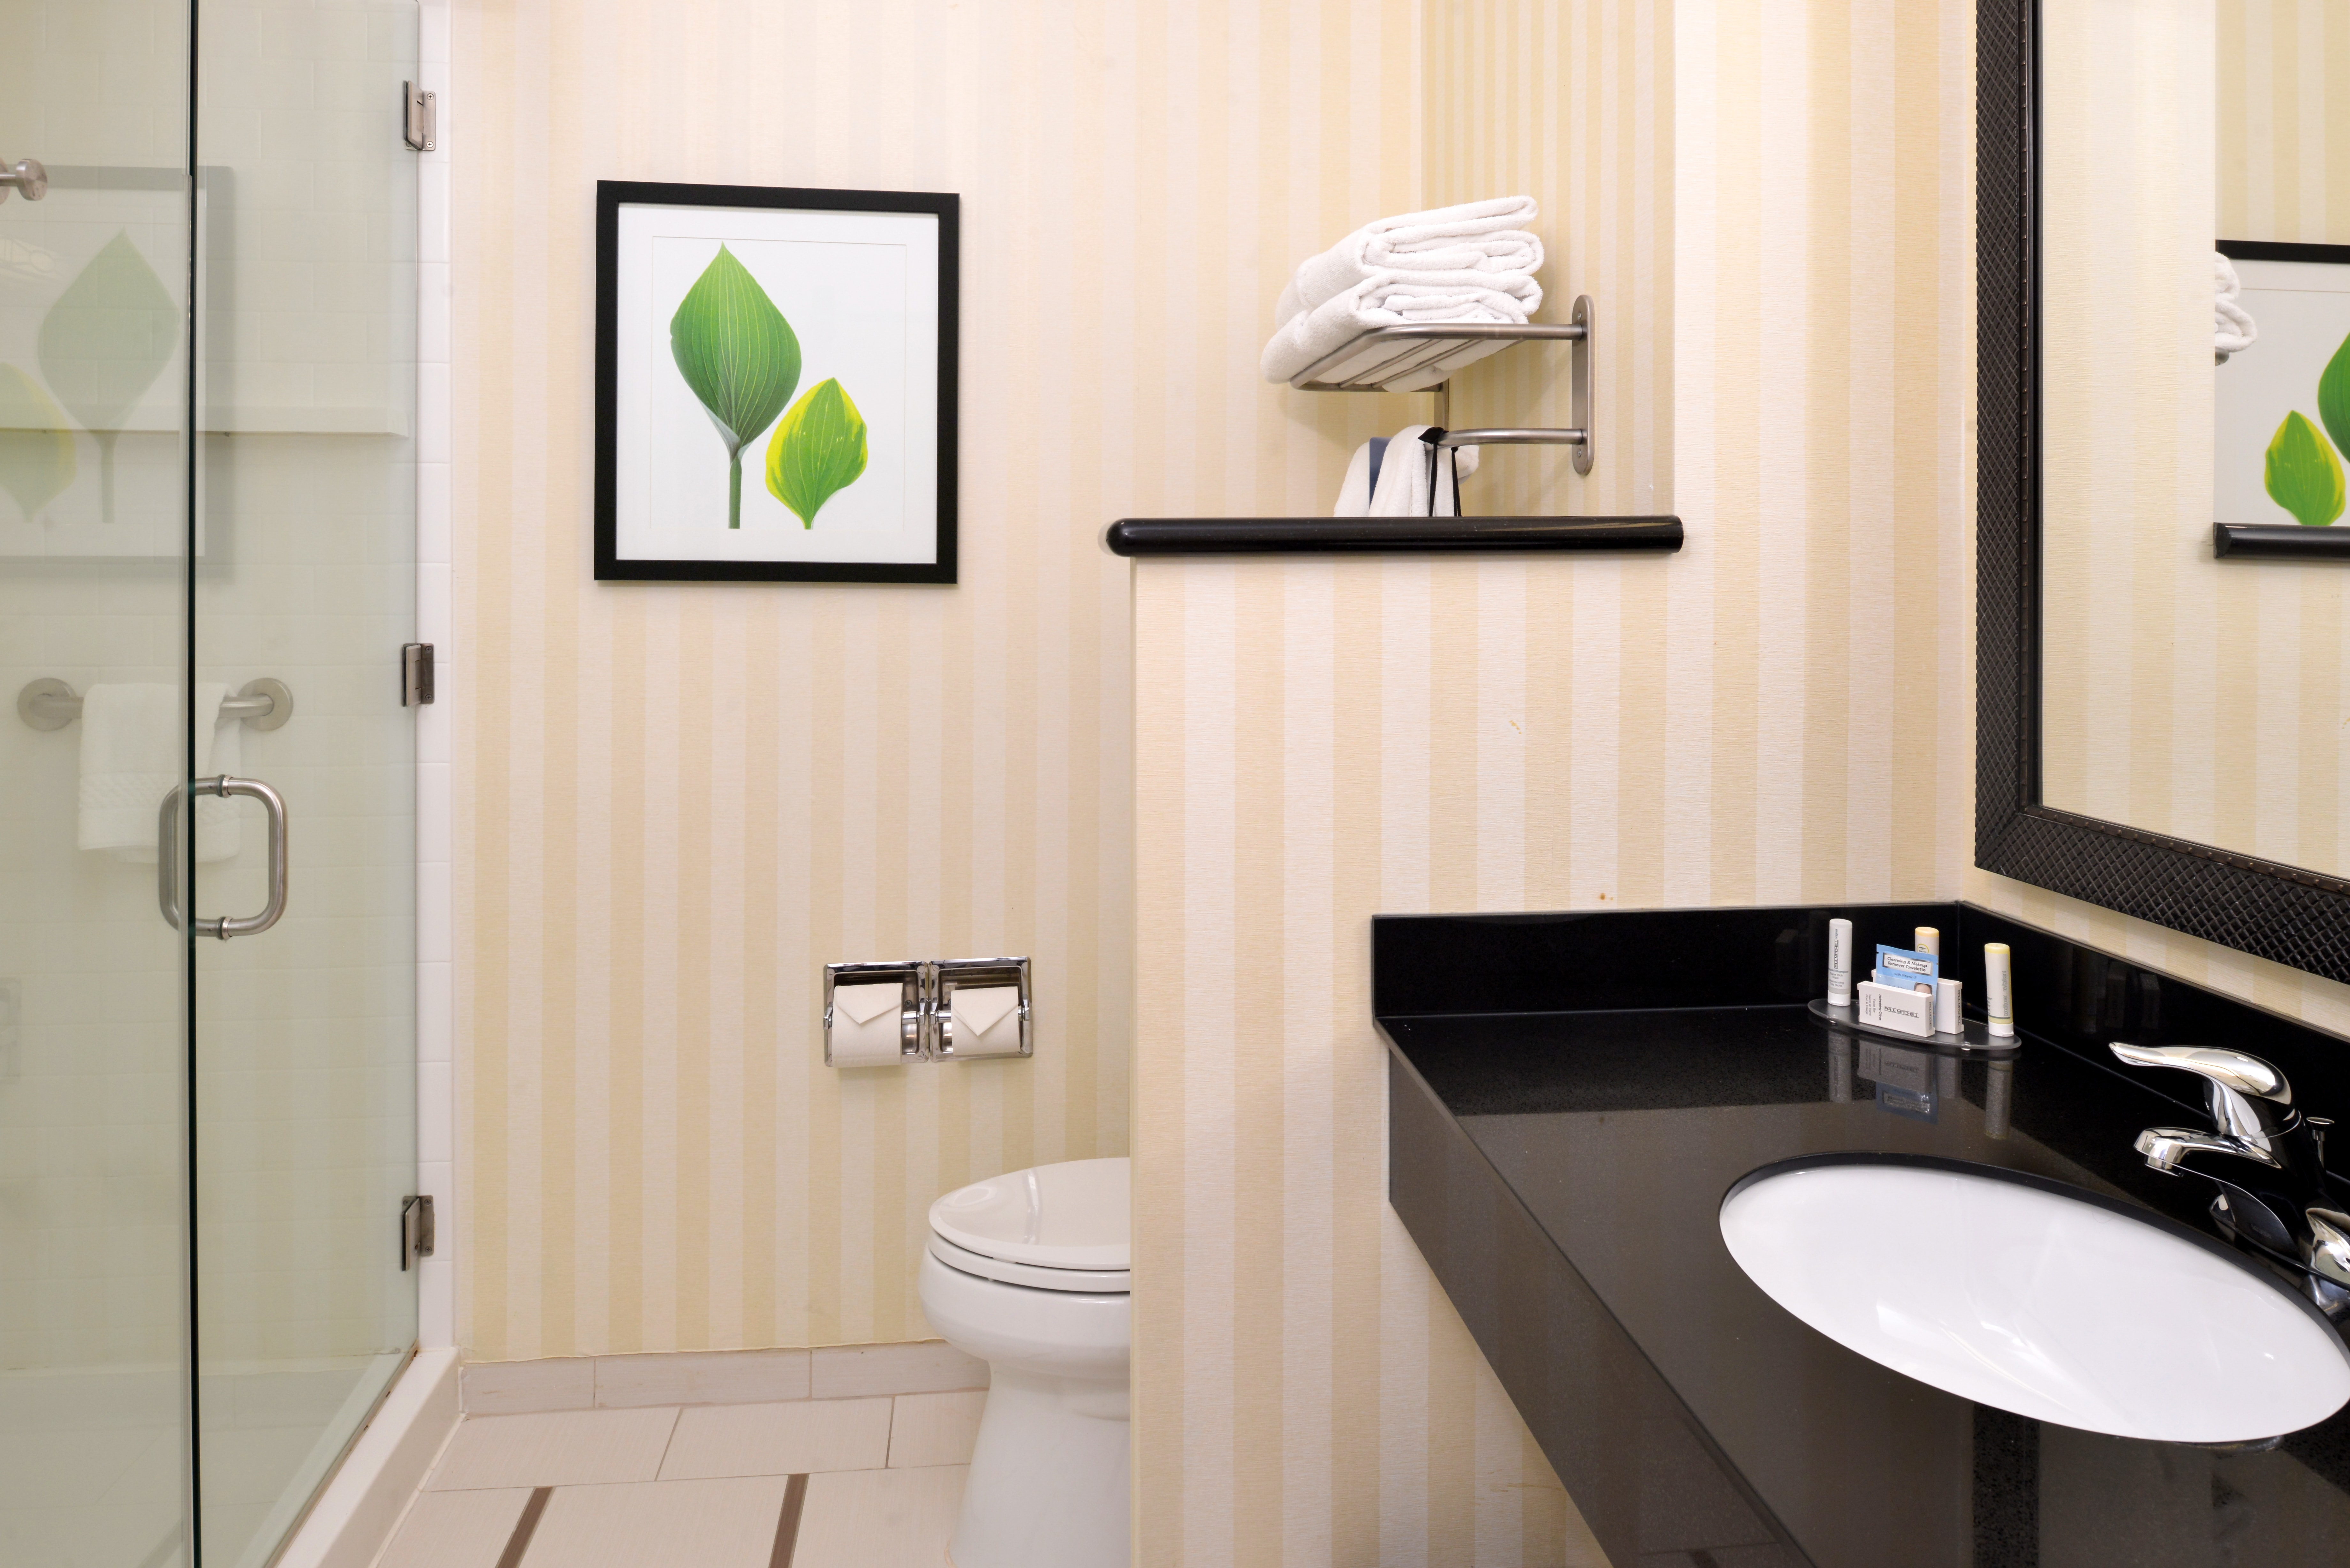 https://www.hotelsbyday.com/_data/default-hotel_image/3/15126/fis-cidcr-bathroom2.jpg